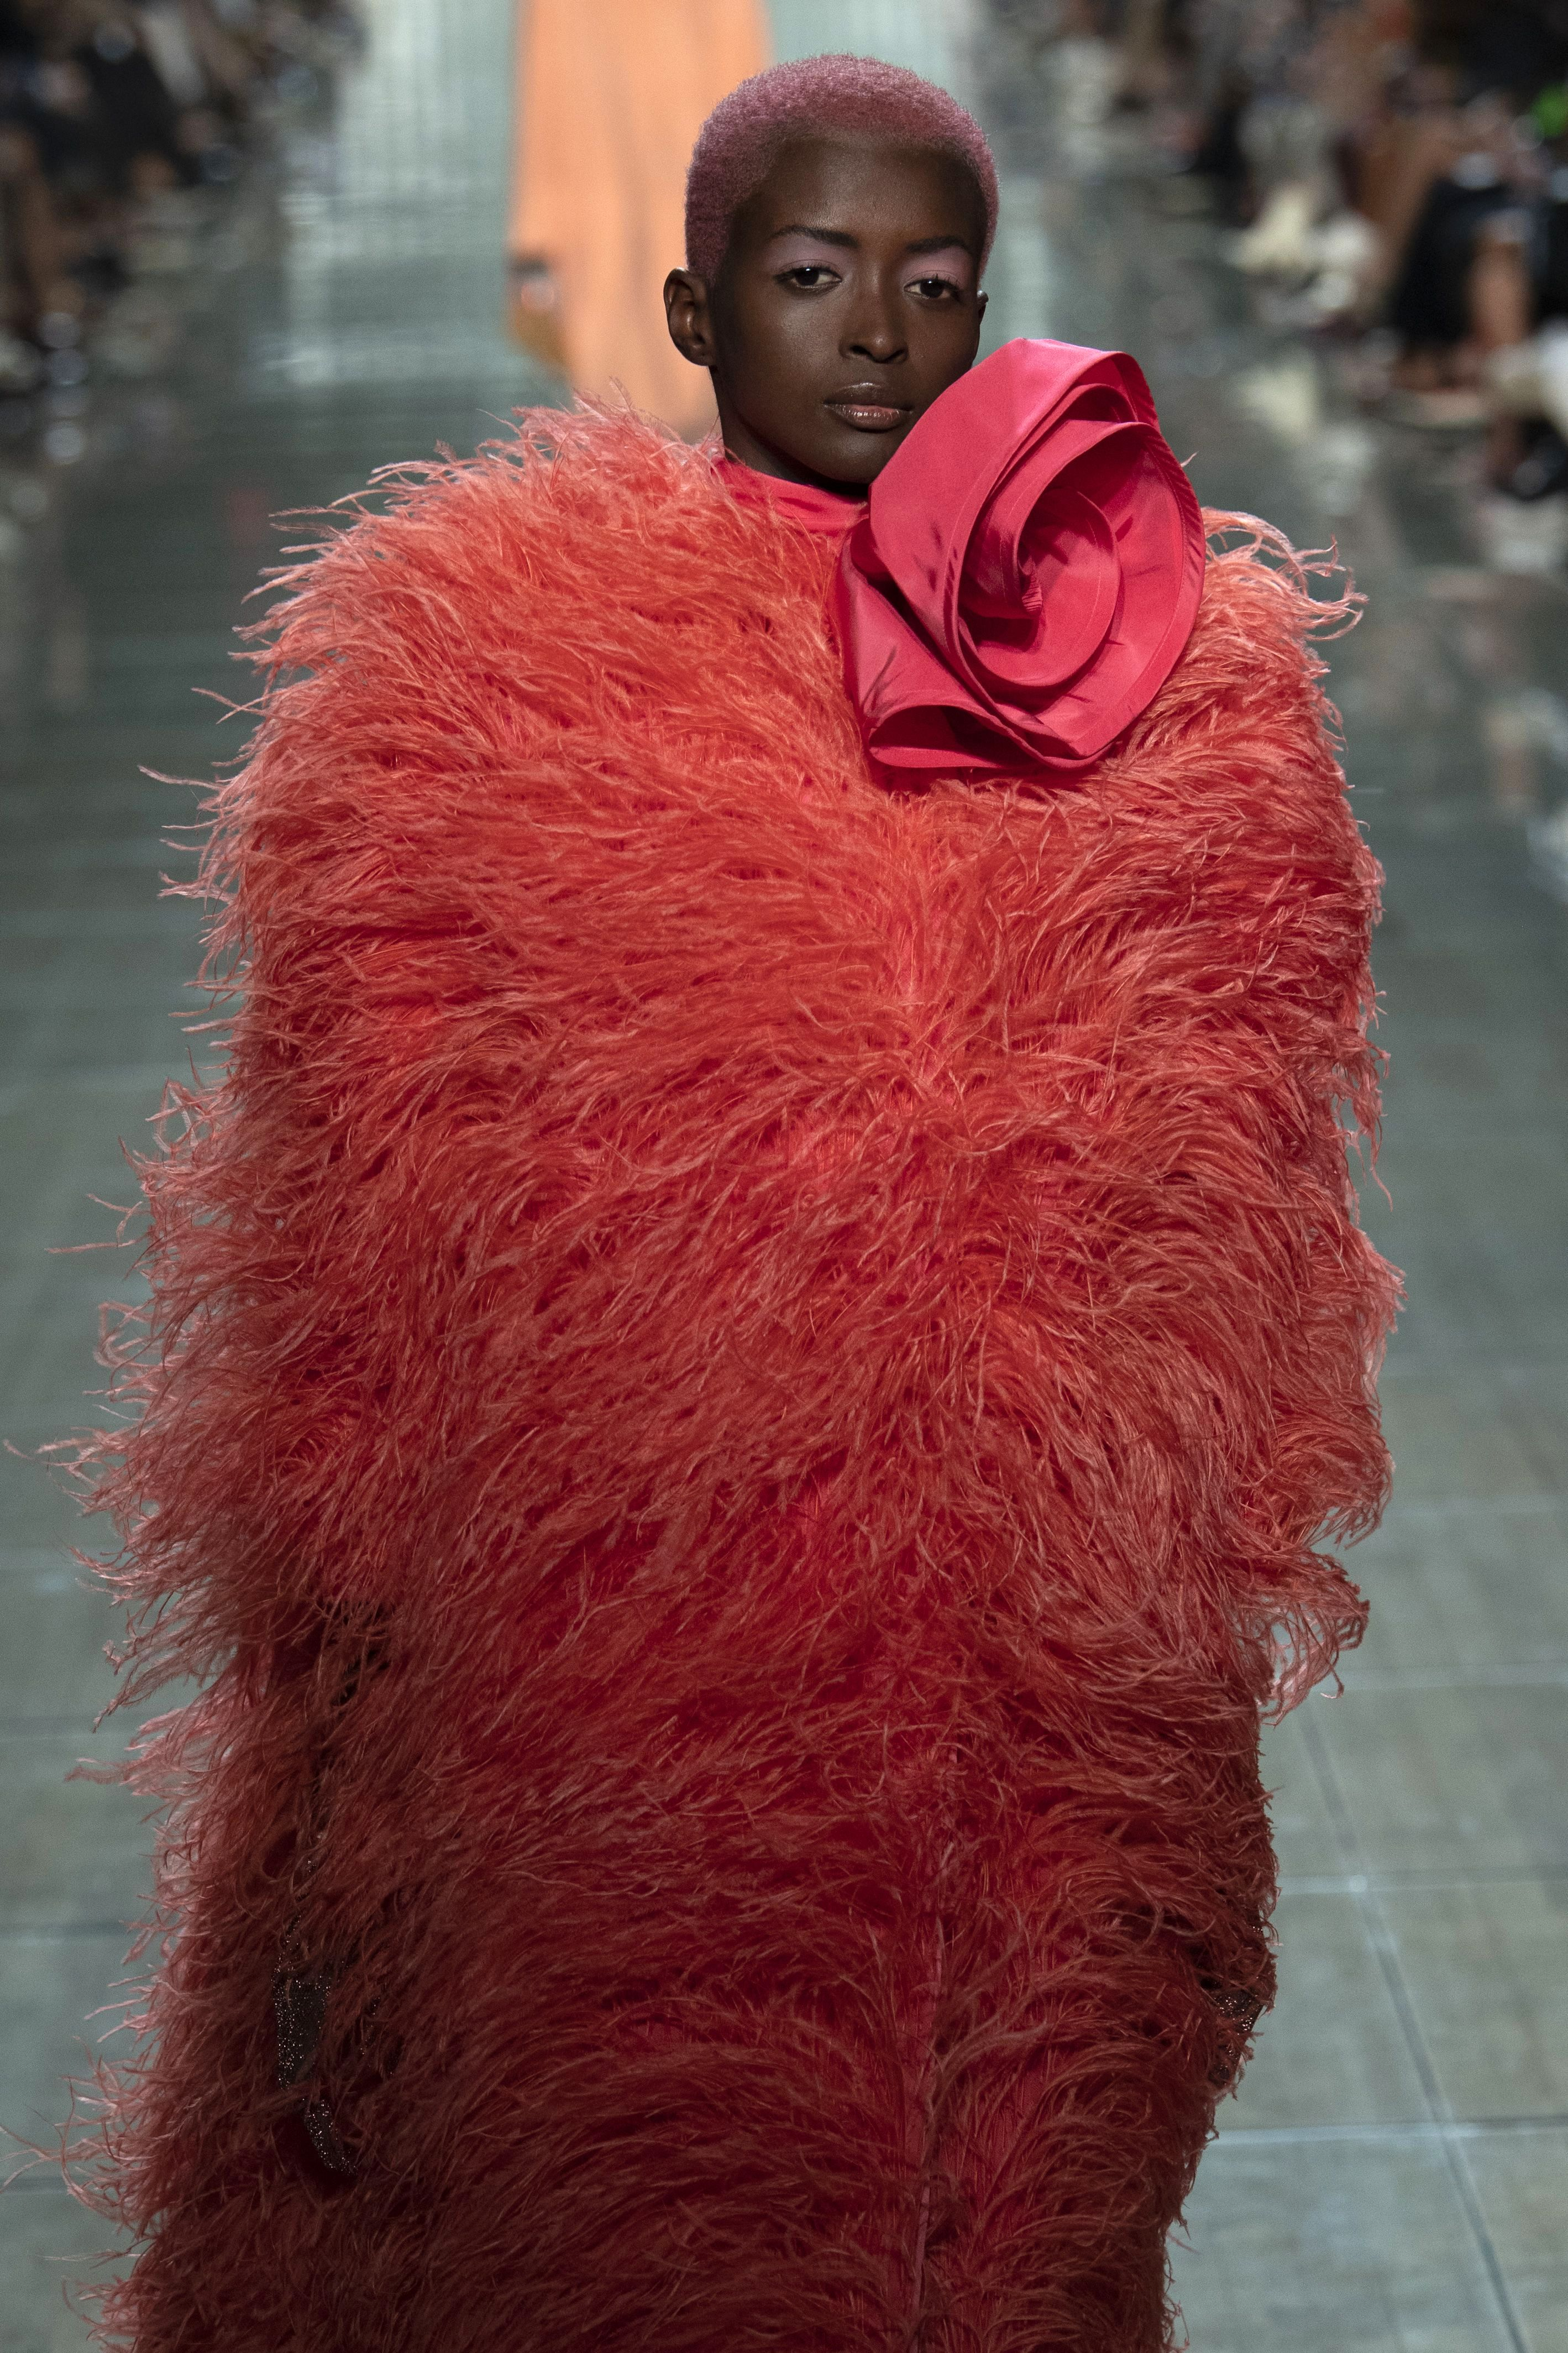 Model on the catwalk Marc Jacobs show, Runway, Spring Summer 2019, New York Fashion Week, USA – 12 Sep 2018